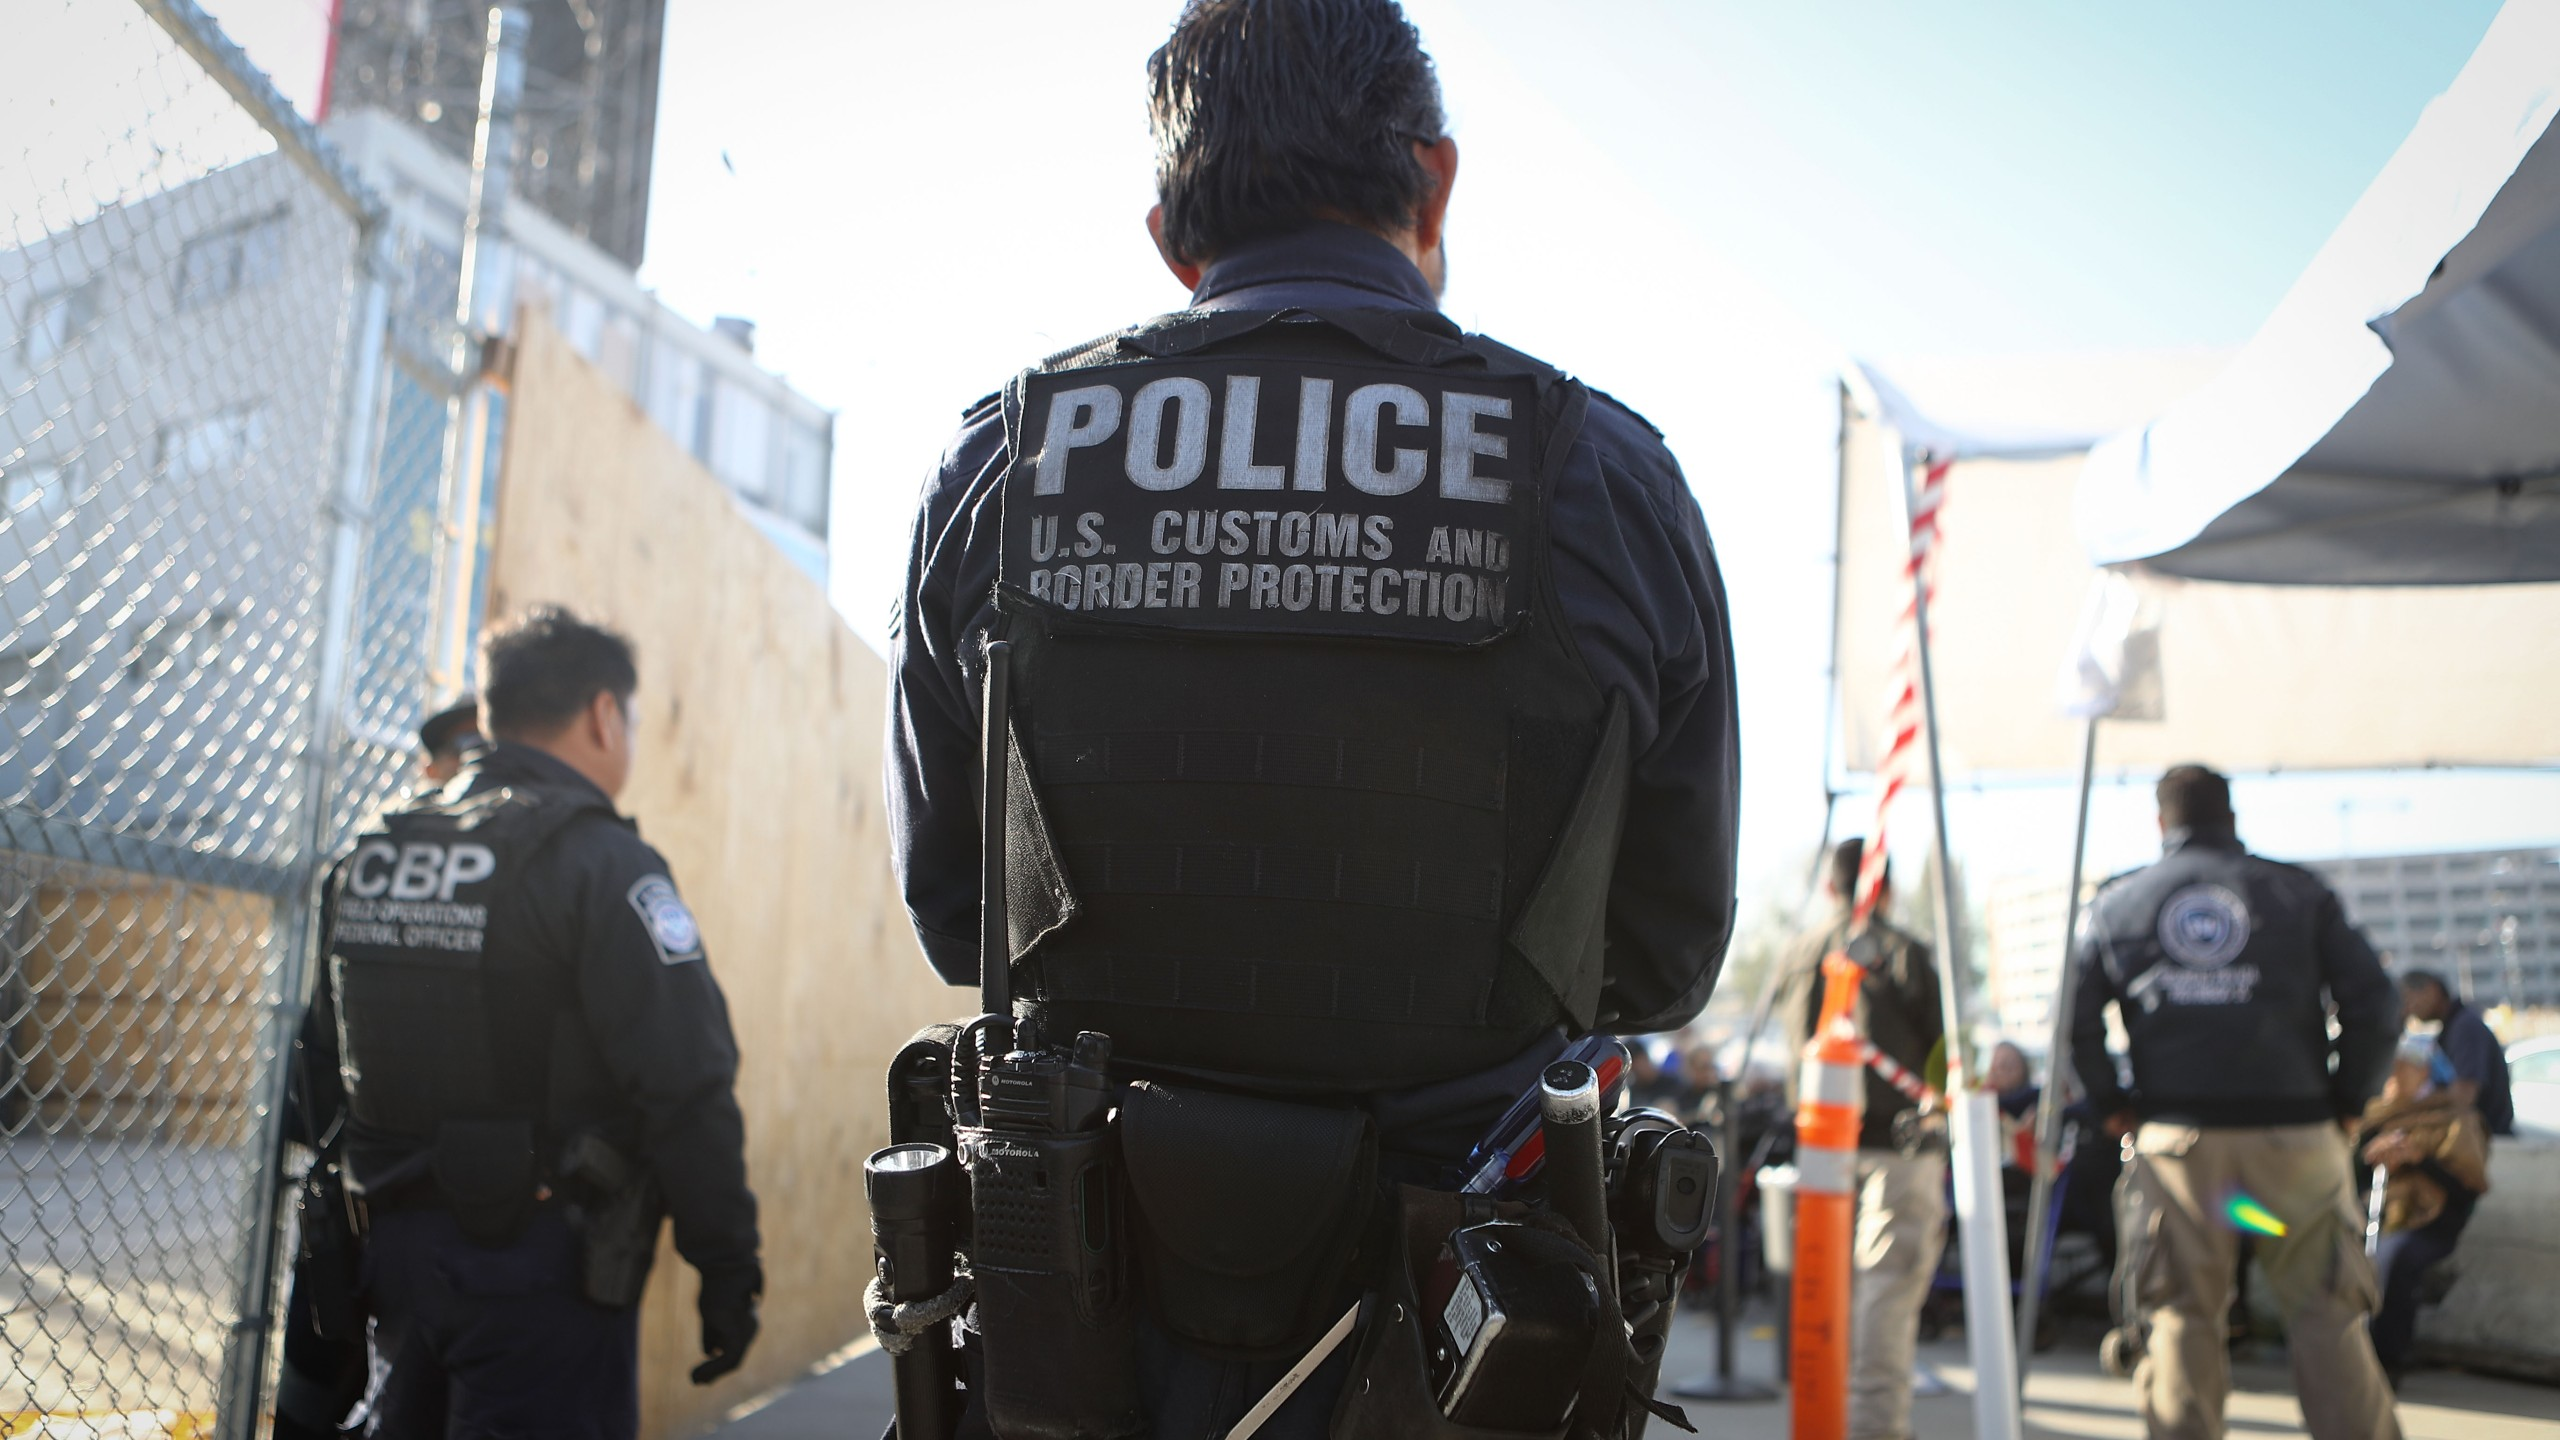 A U.S. Customs and Border Protection officer waits for pedestrians entering the United States at the San Ysidro port of entry on April 9, 2018. (Credit: Mario Tama/Getty Images)